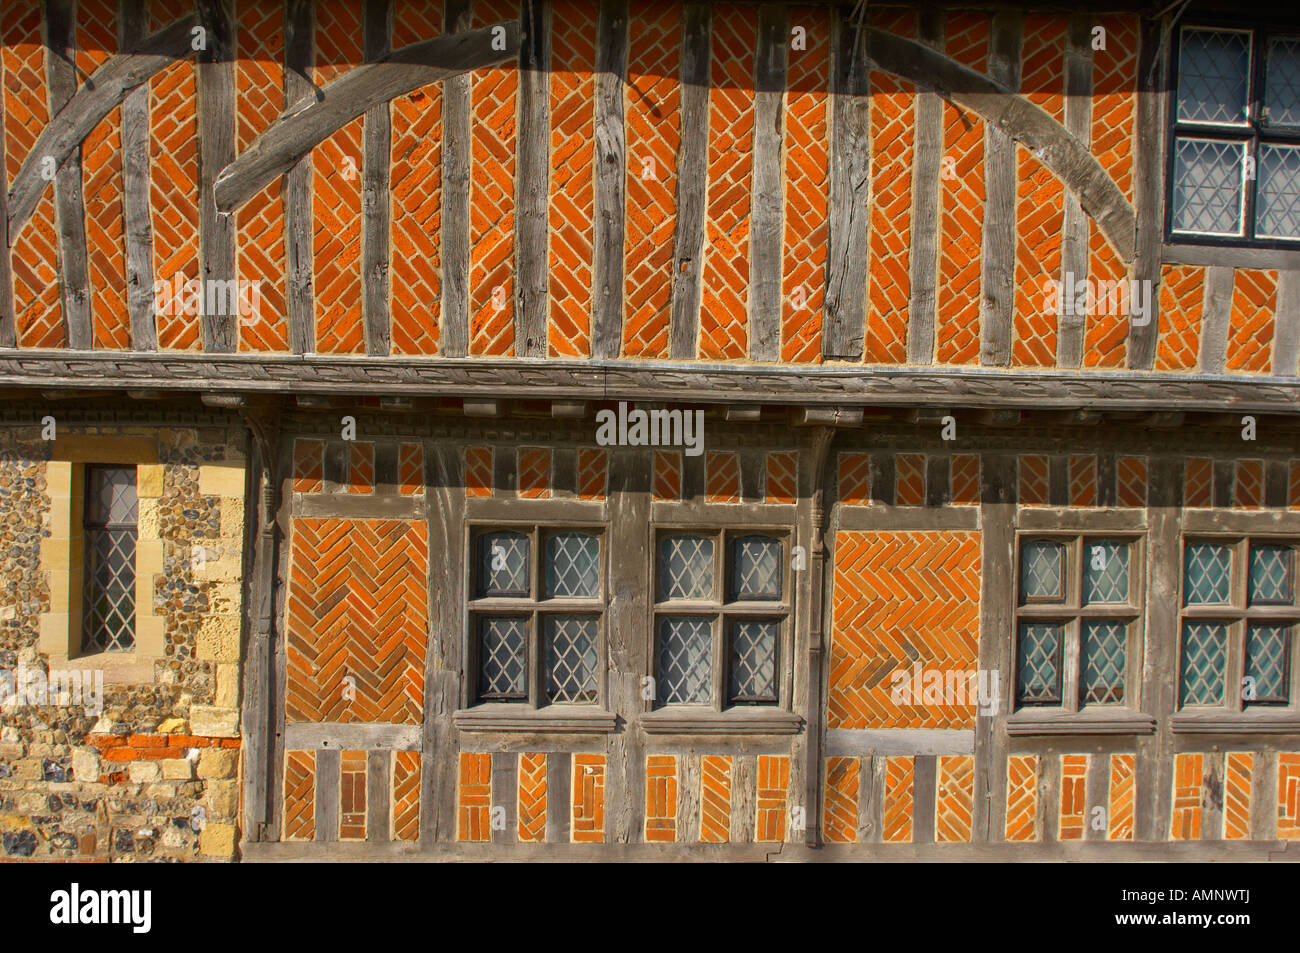 Elizabethan tudor windows and half timbered building of town Hall Aldeburgh, East Anglia, Suffolk, England - Stock Image